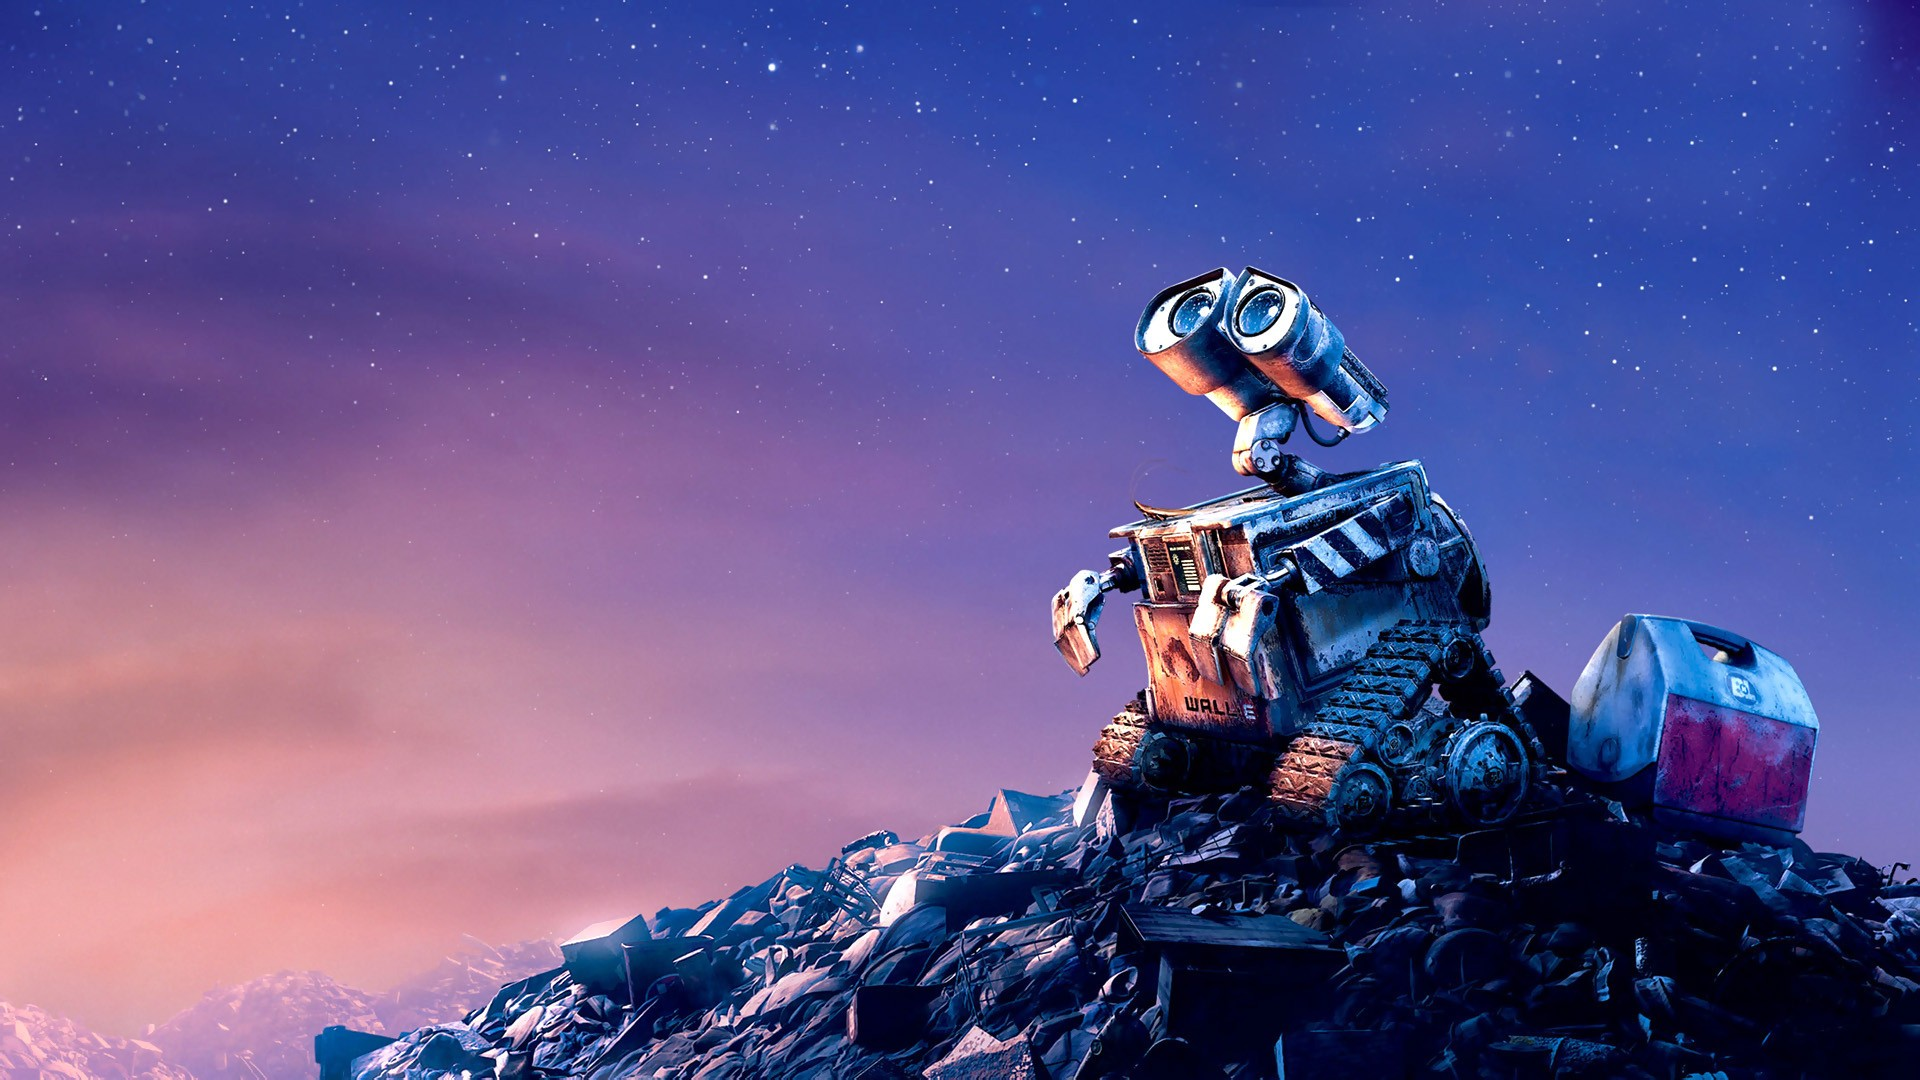 General 1920x1080 WALL·E Pixar Animation Studios movies stars sky space robot WALL-E